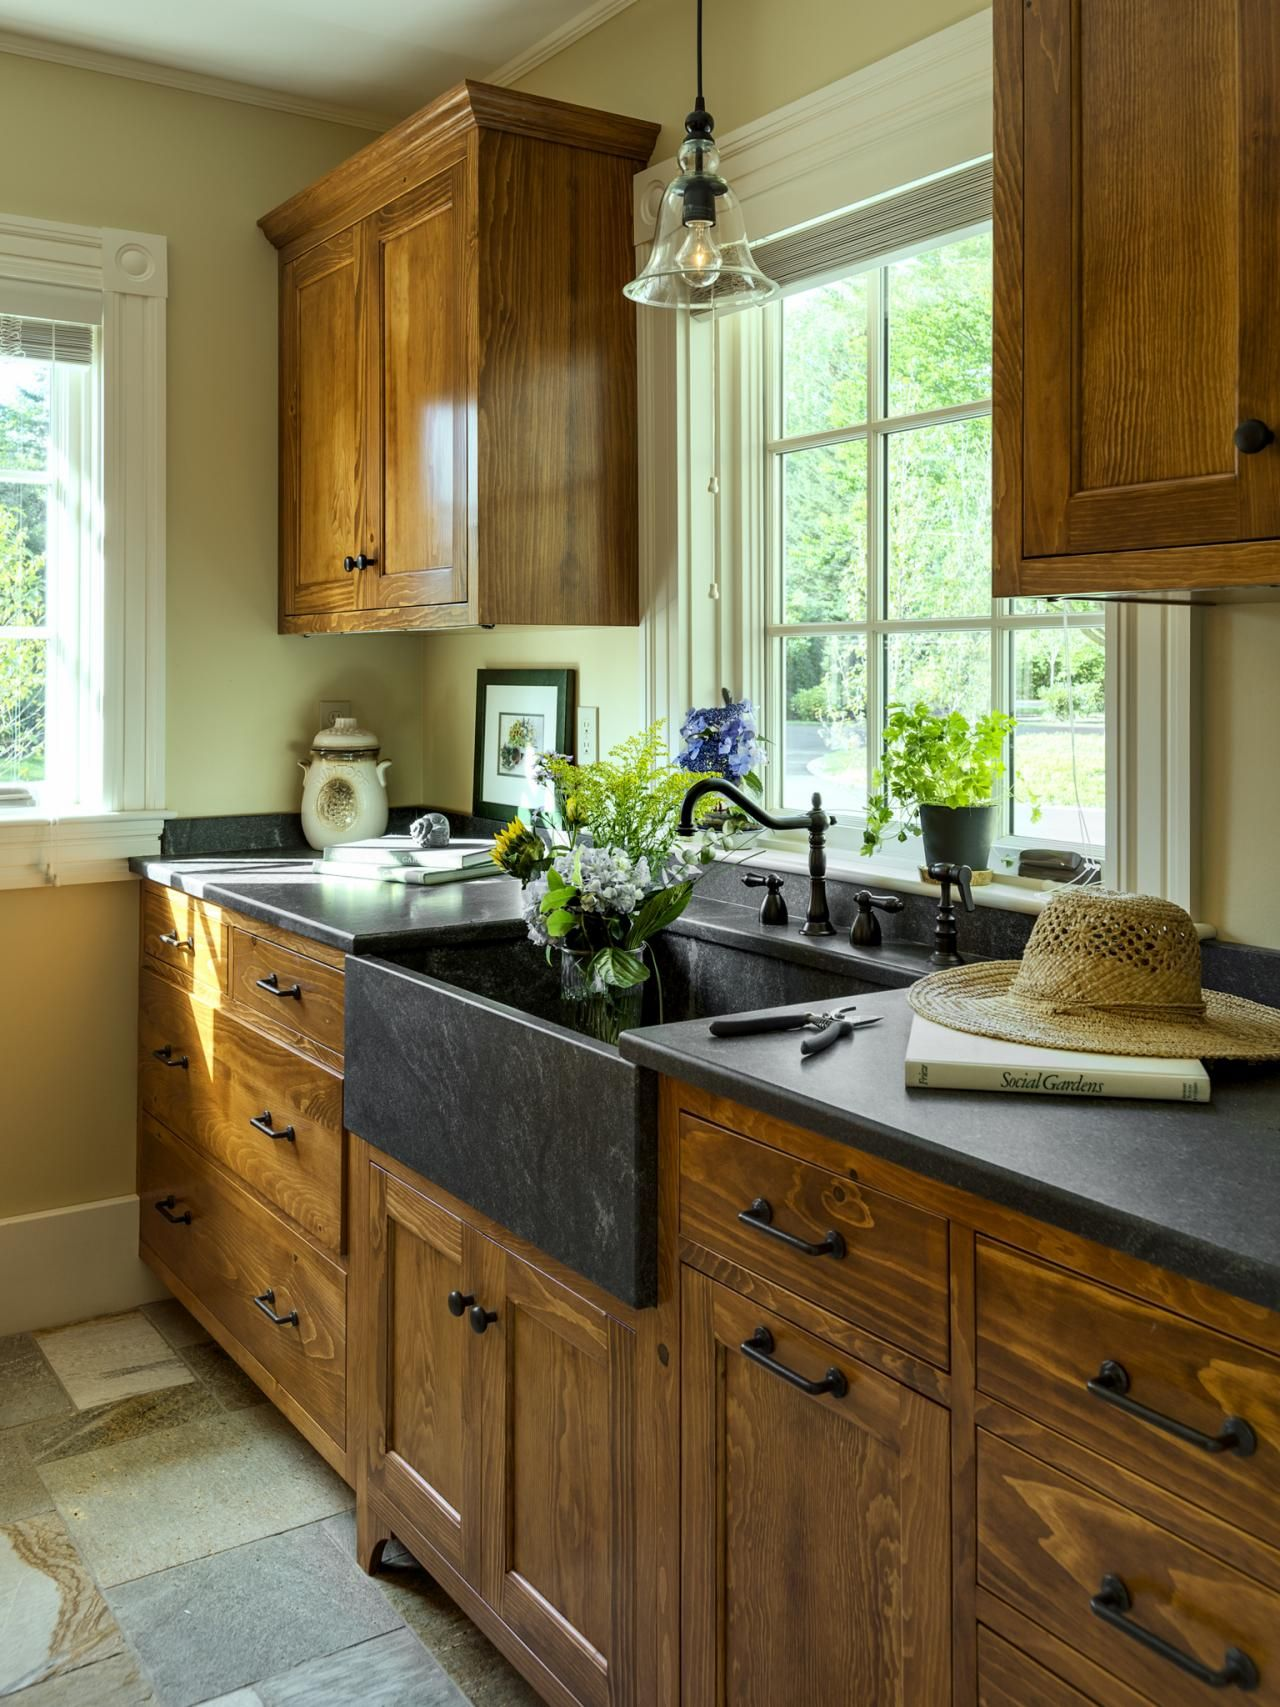 Top 50 pinterest gallery 2014 hgtv sinks and kitchens for Kitchen cabinets ideas pictures